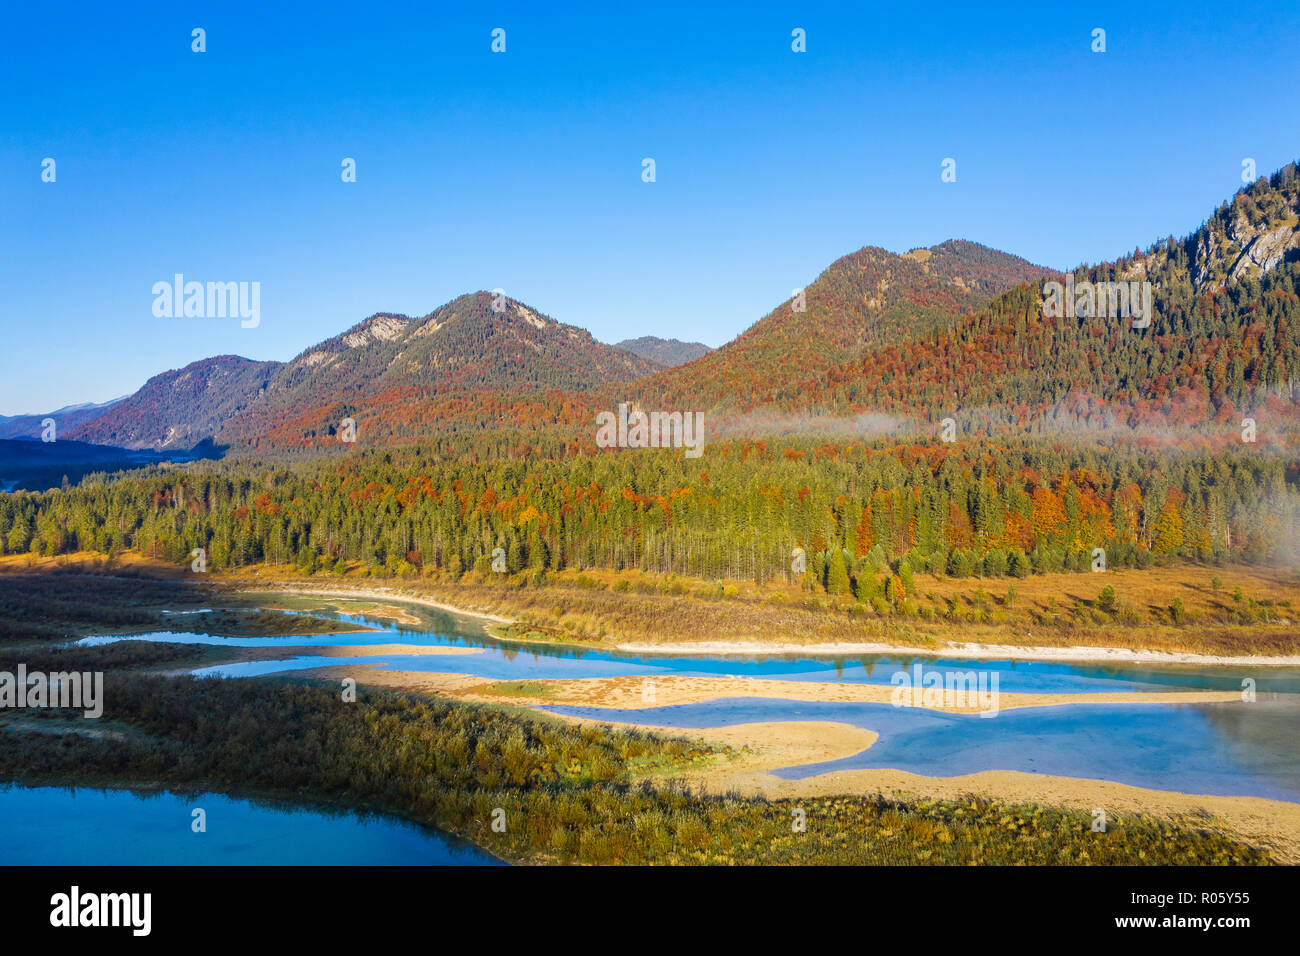 Inflow of the Isar into the Sylvenstein lake, Sylvenstein reservoir, drone image, Lenggries, Isarwinkel, Upper Bavaria, Bavaria Stock Photo